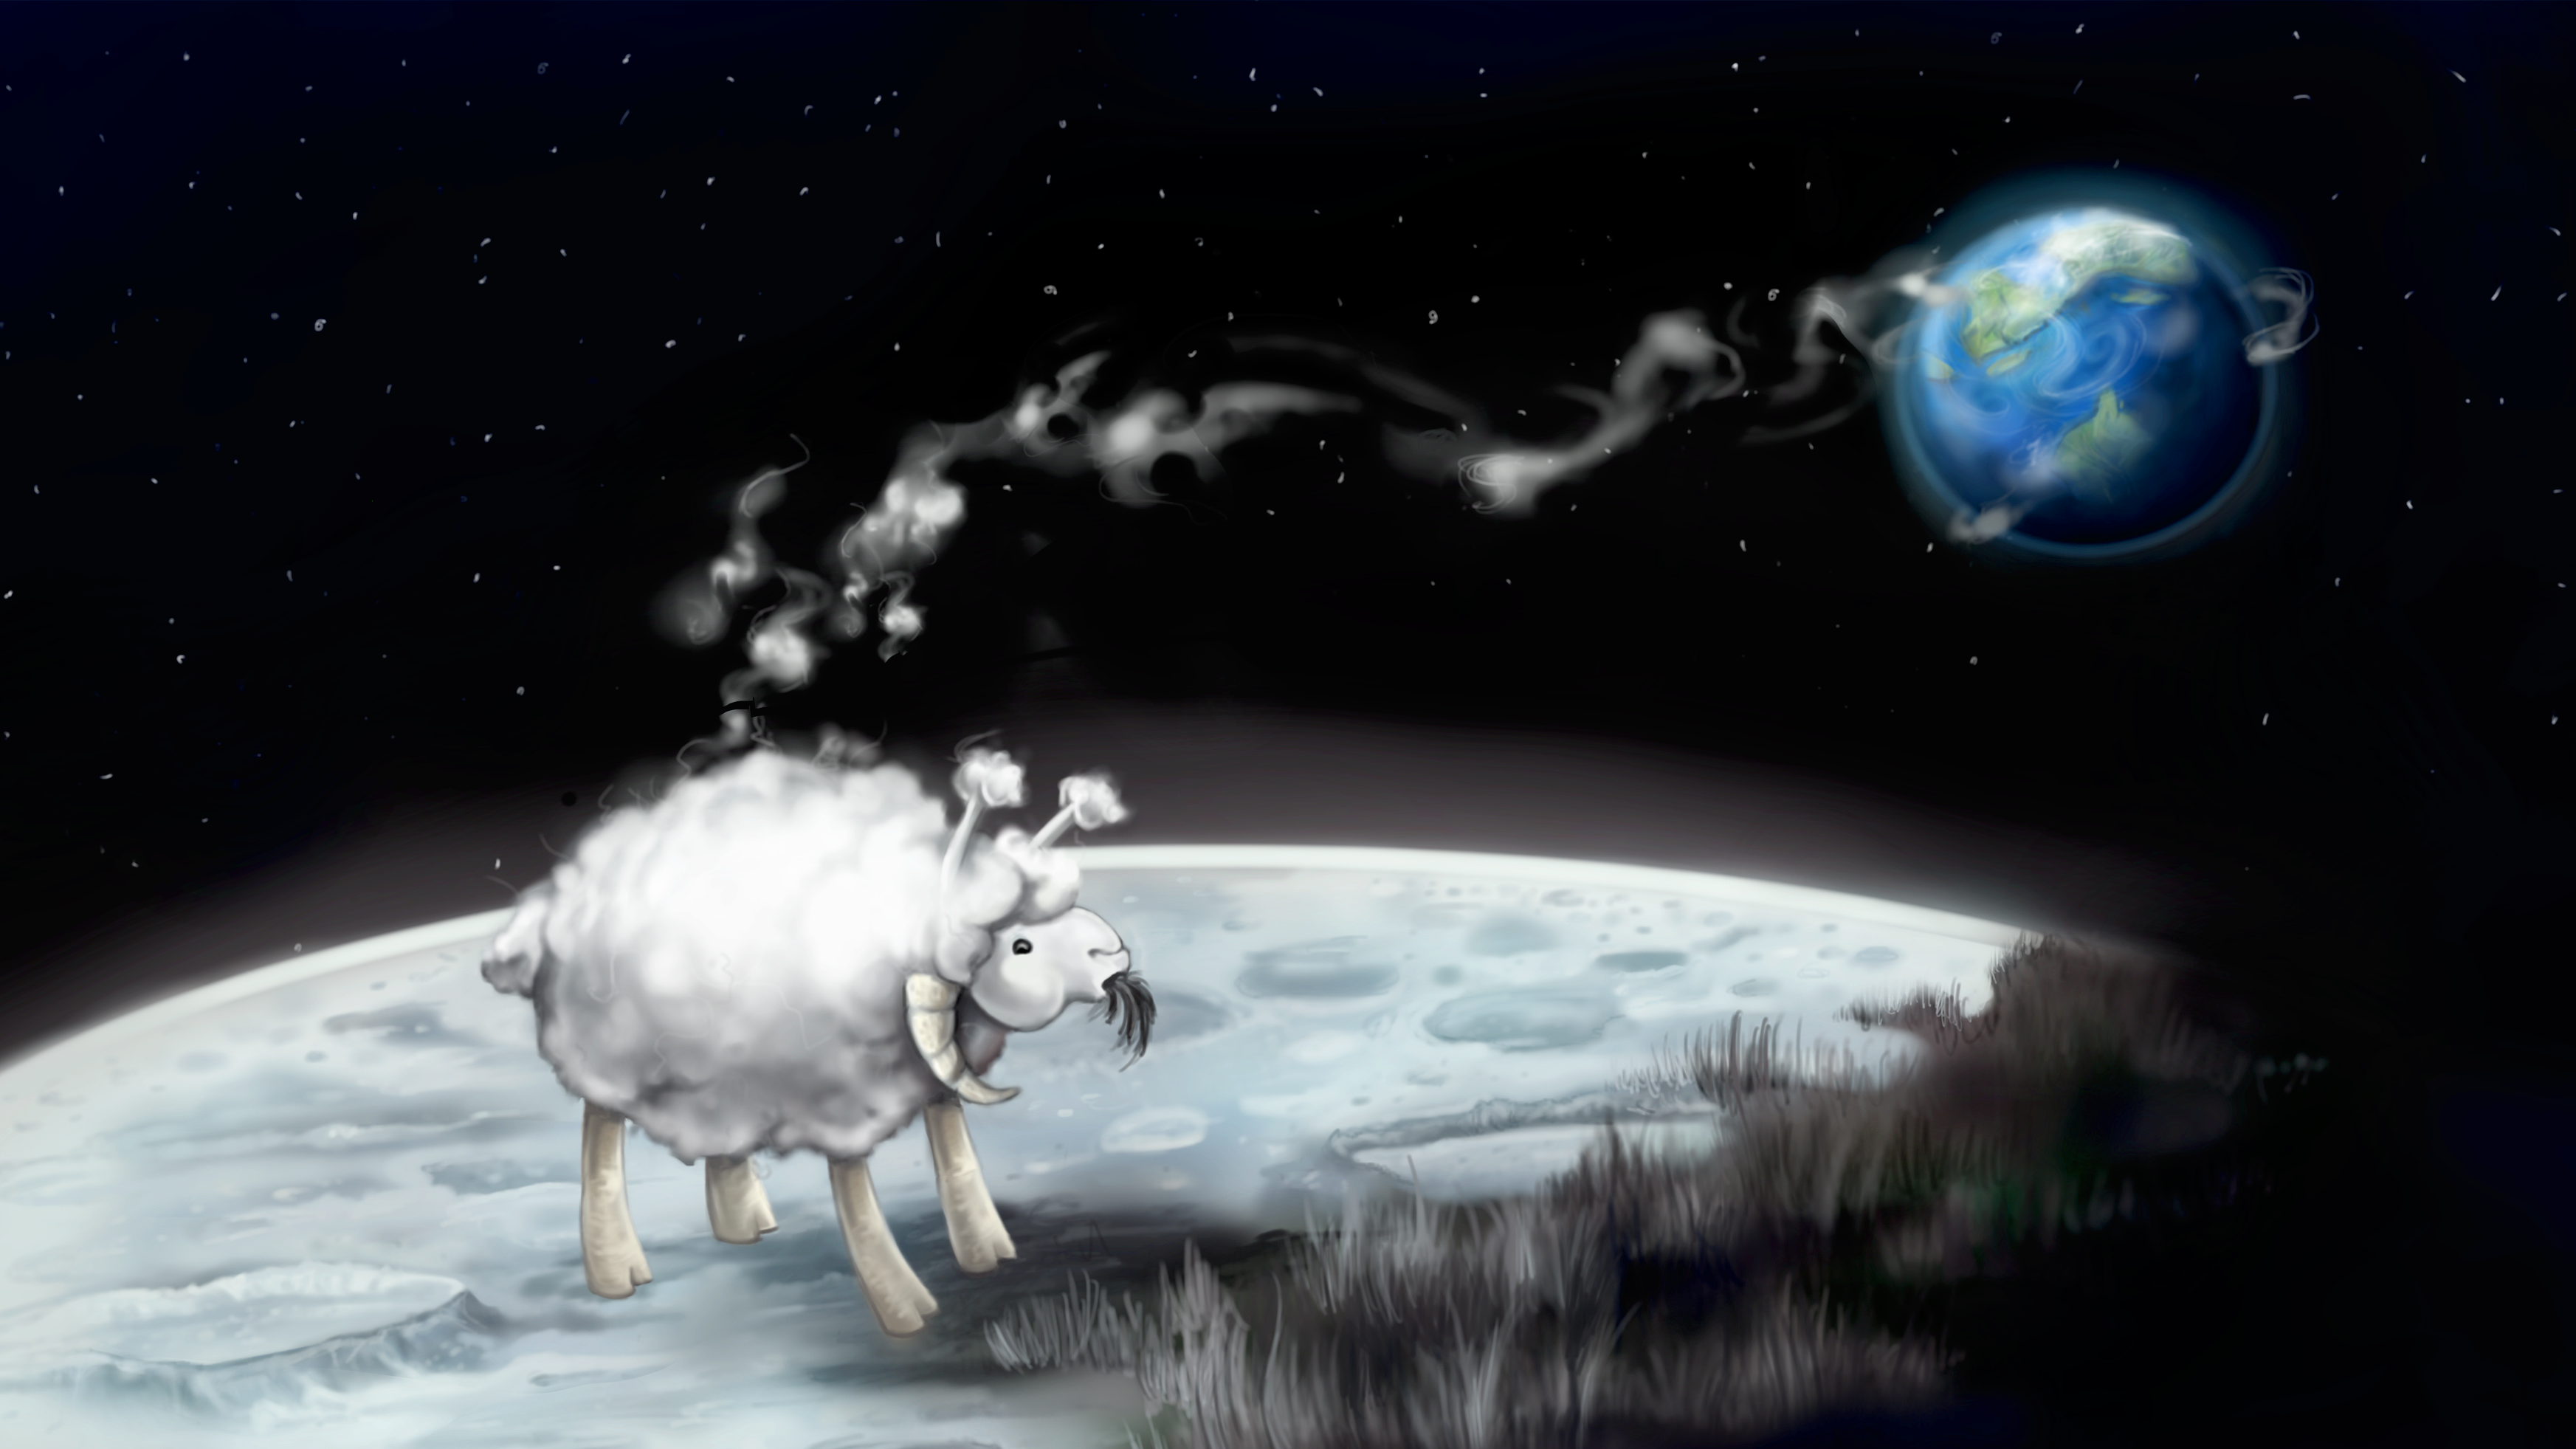 Moon Sheep illustration